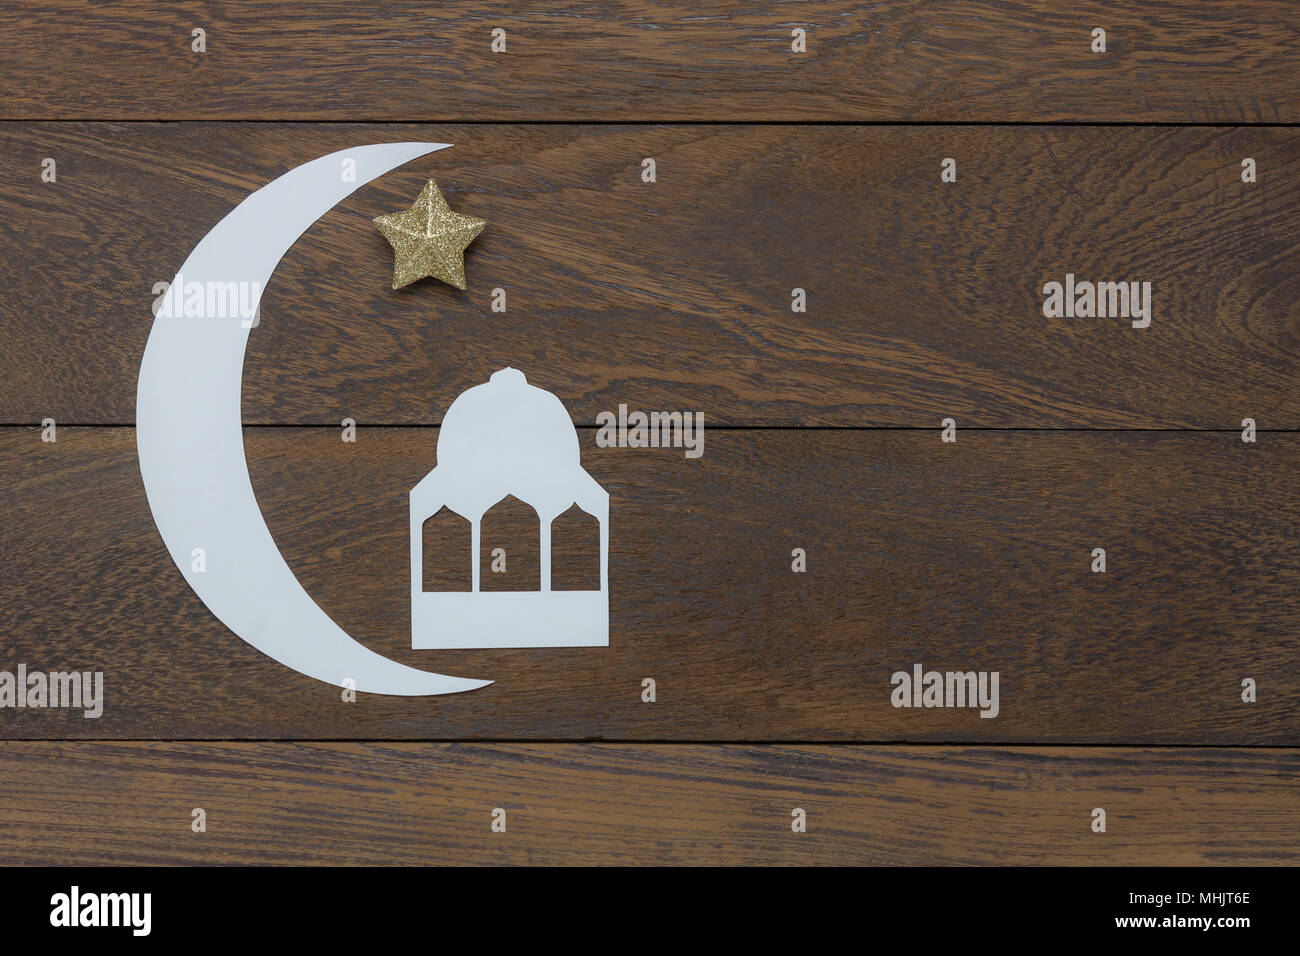 Best Moon Star Light Eid Al-Fitr Decorations - table-top-view-aerial-image-of-decorations-ramadan-kareem-holiday-backgroundflat-lay-paper-cute-the-white-moon-gold-star-with-islamic-castleobject-MHJT6E  Trends_903728 .jpg